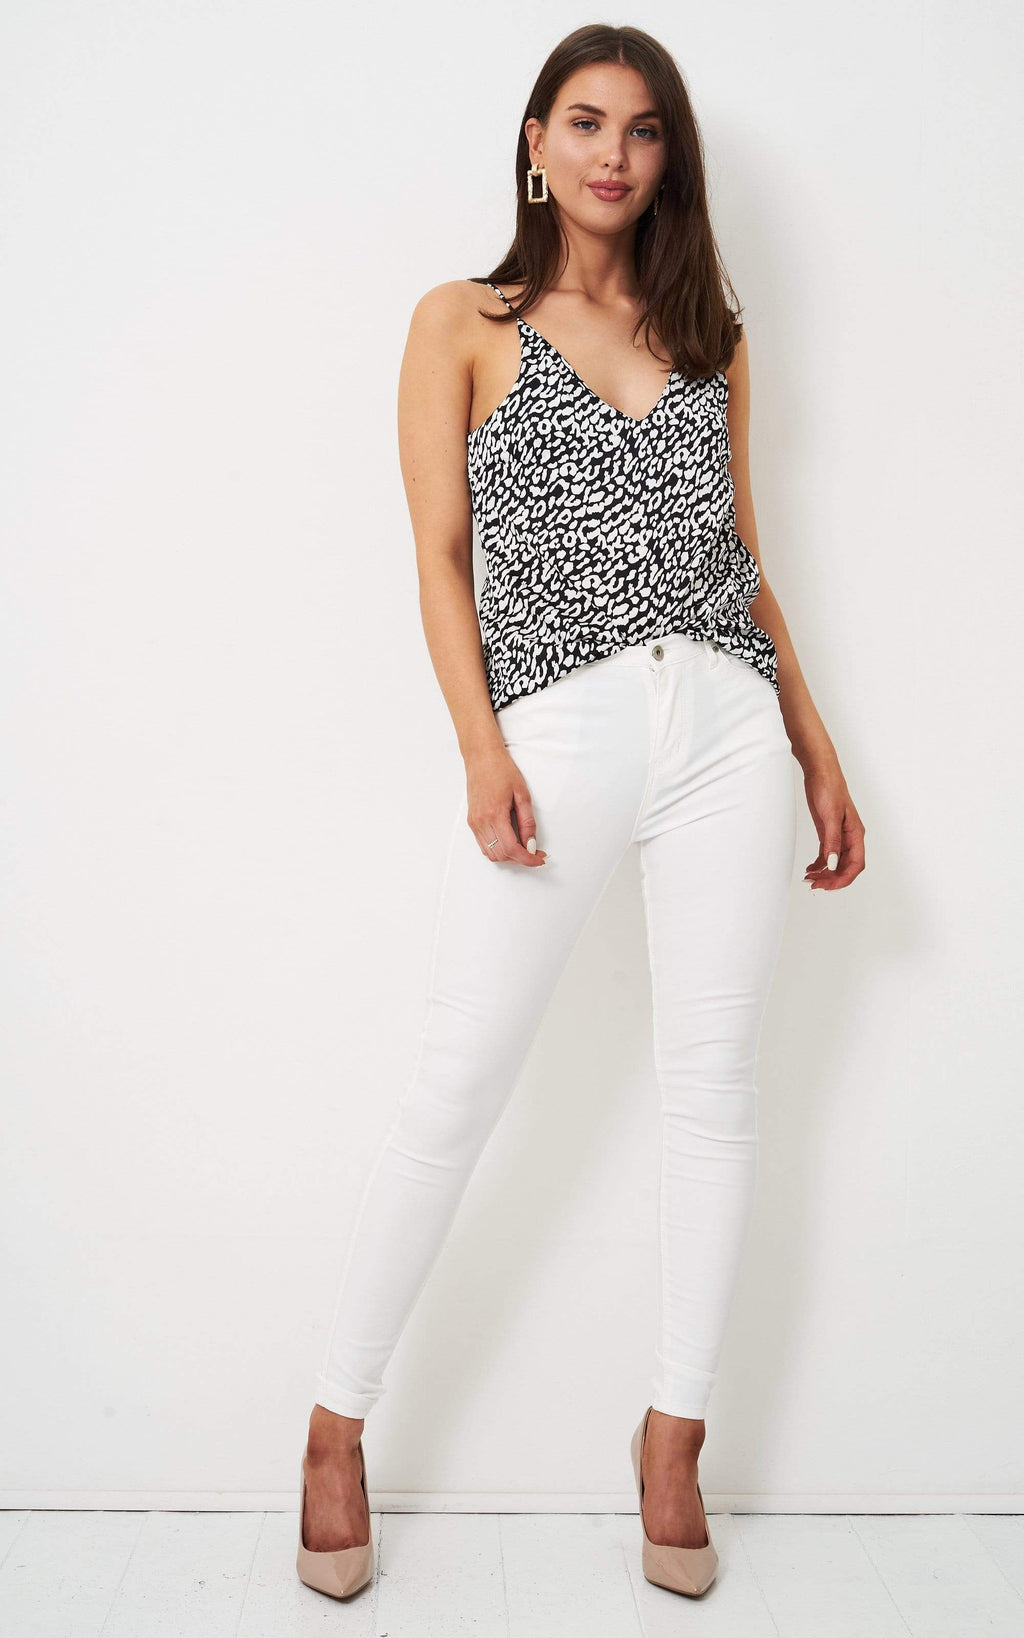 Lyla Cream Leopard Print Cami Top - love frontrow